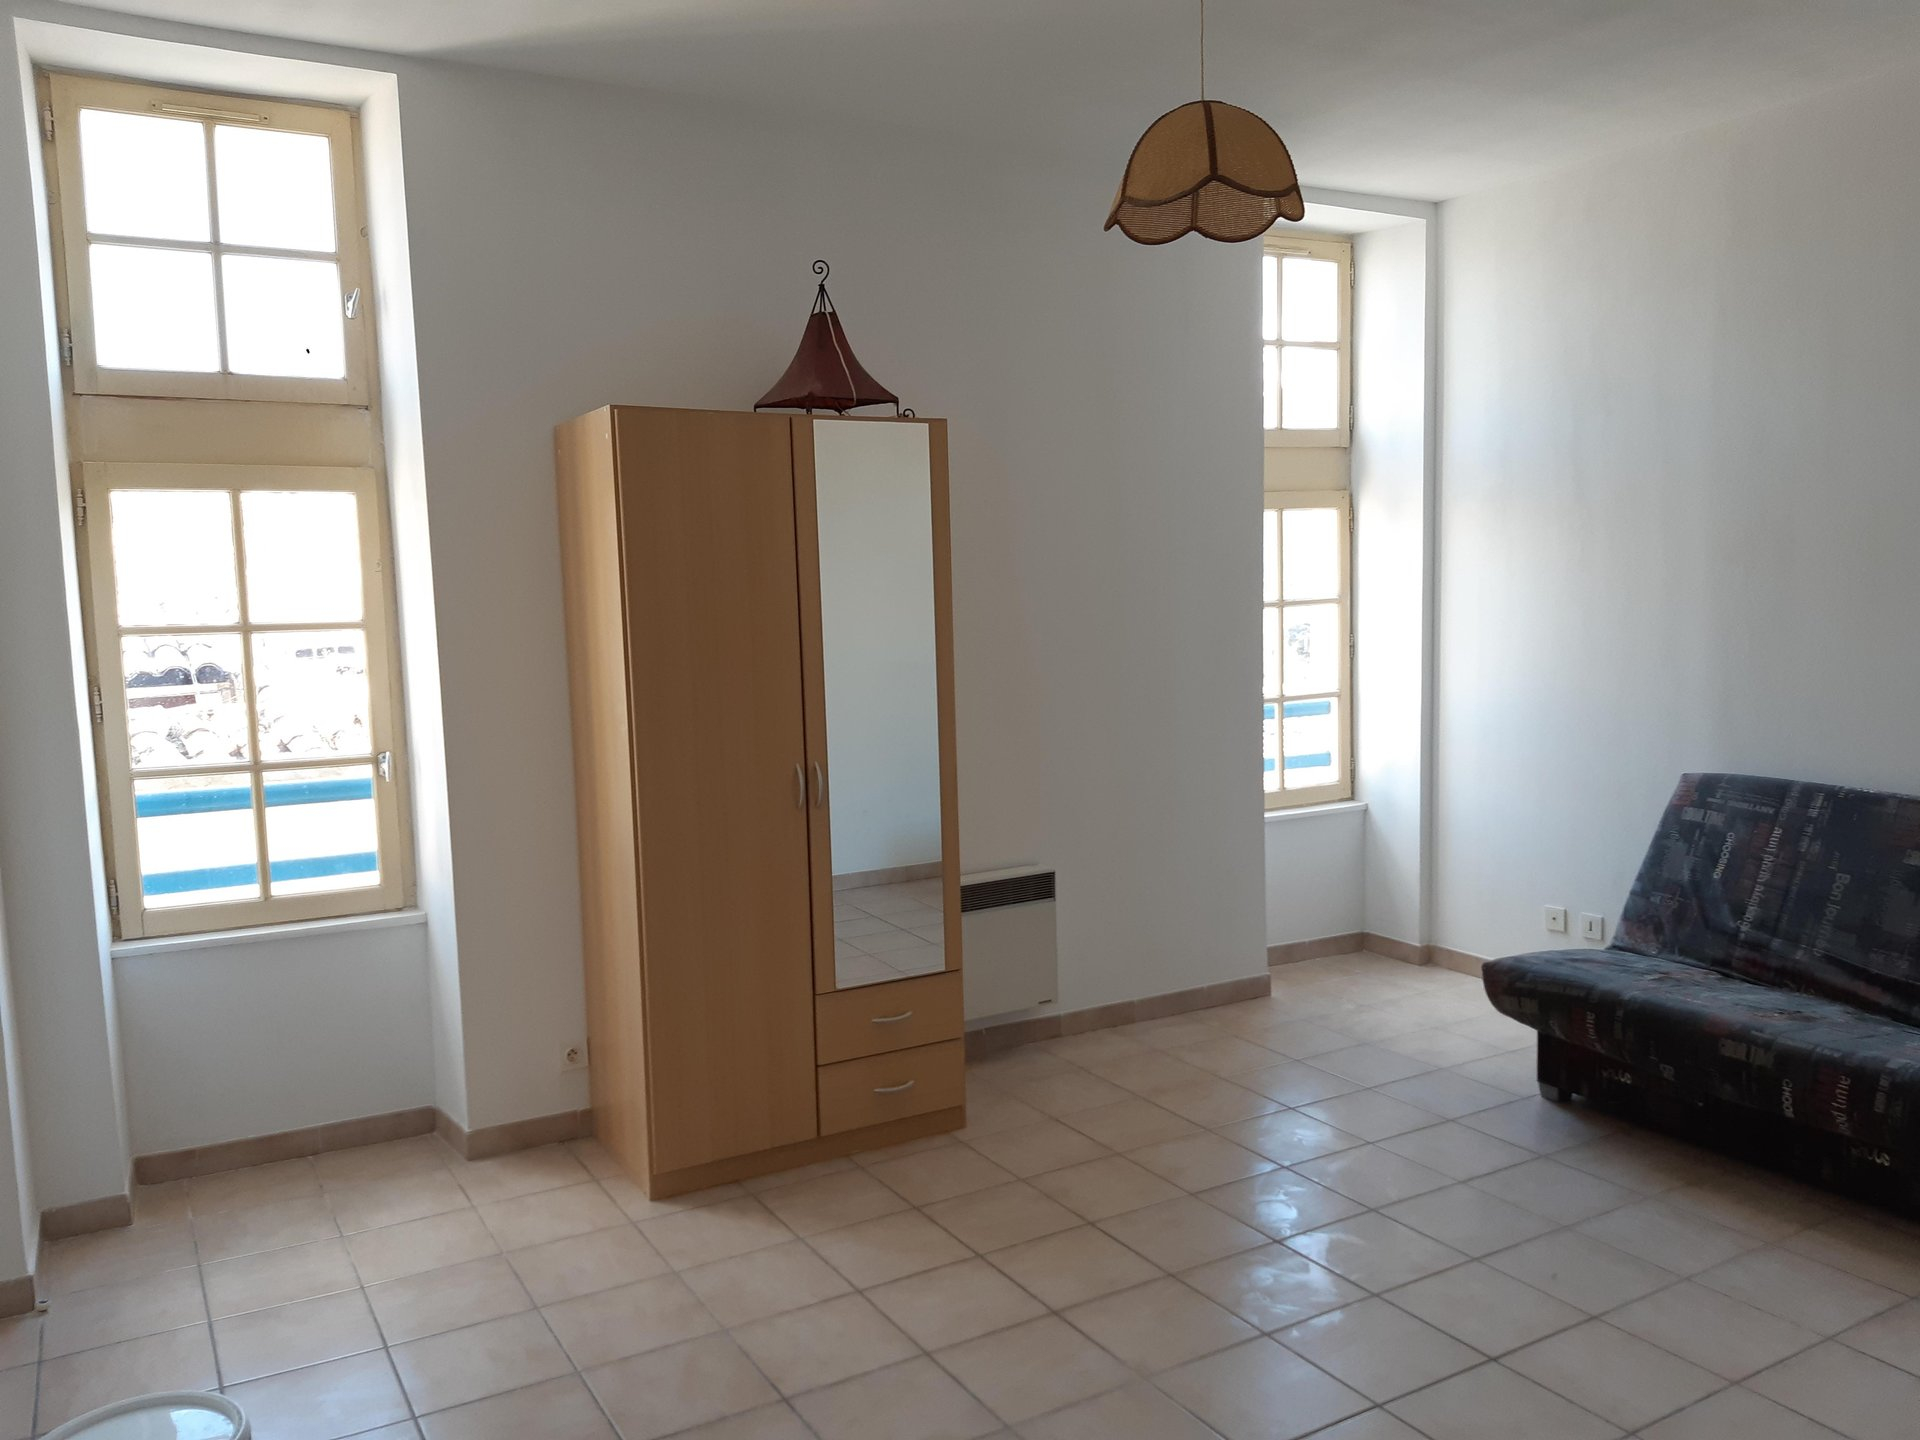 Location Appartement TARASCON Mandat : 0570